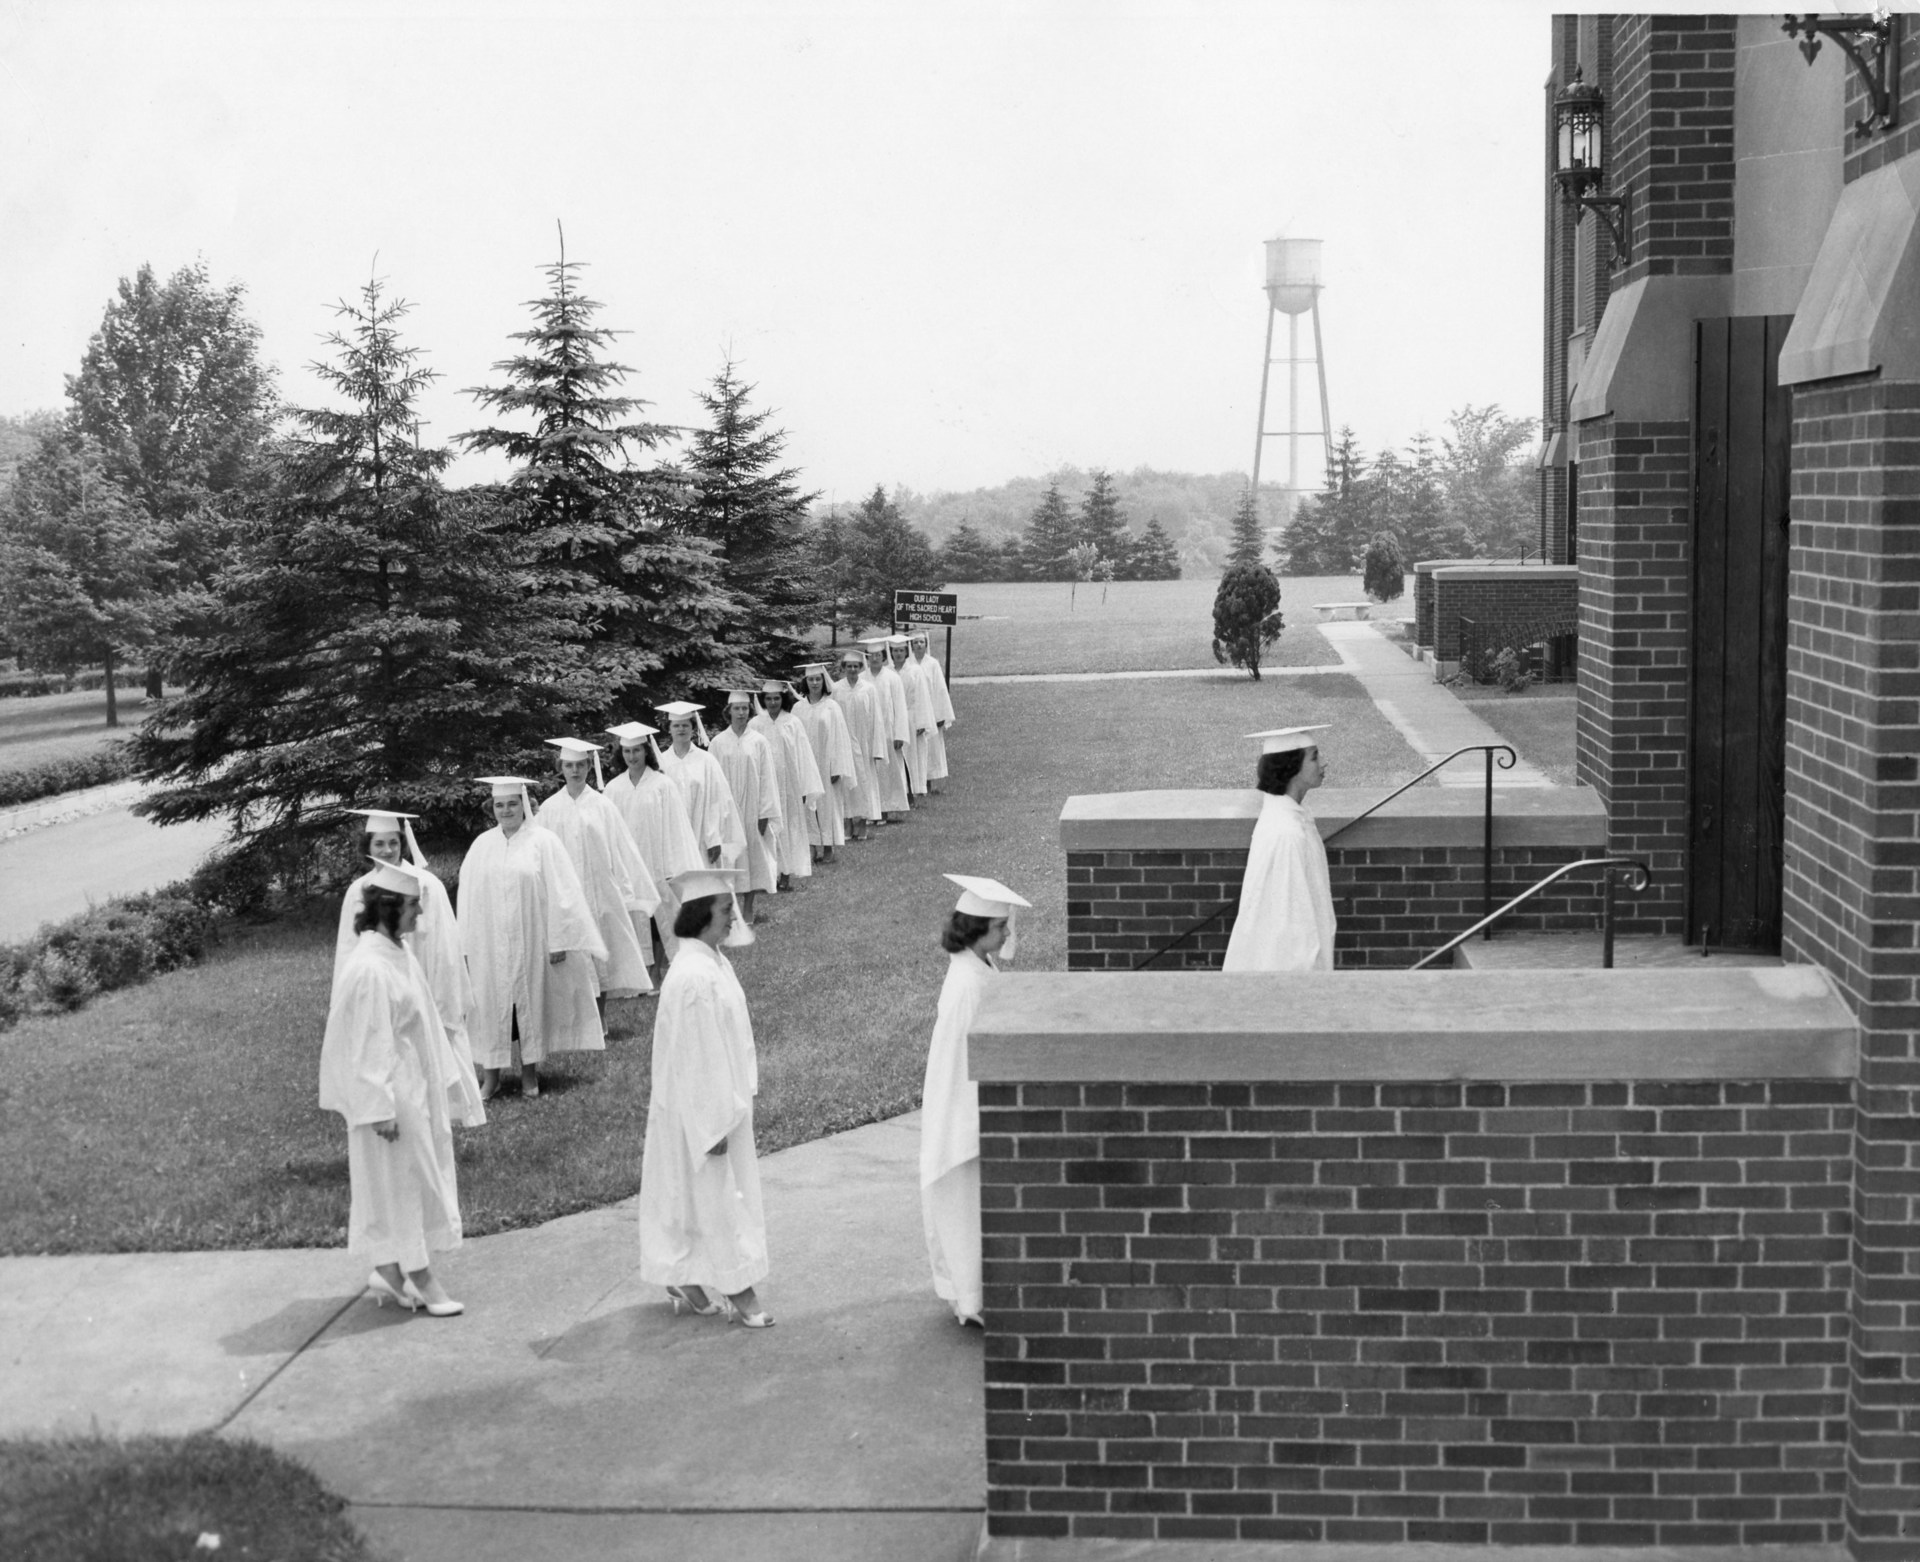 A line of graduates files into the OLSH school building in the 1950s.